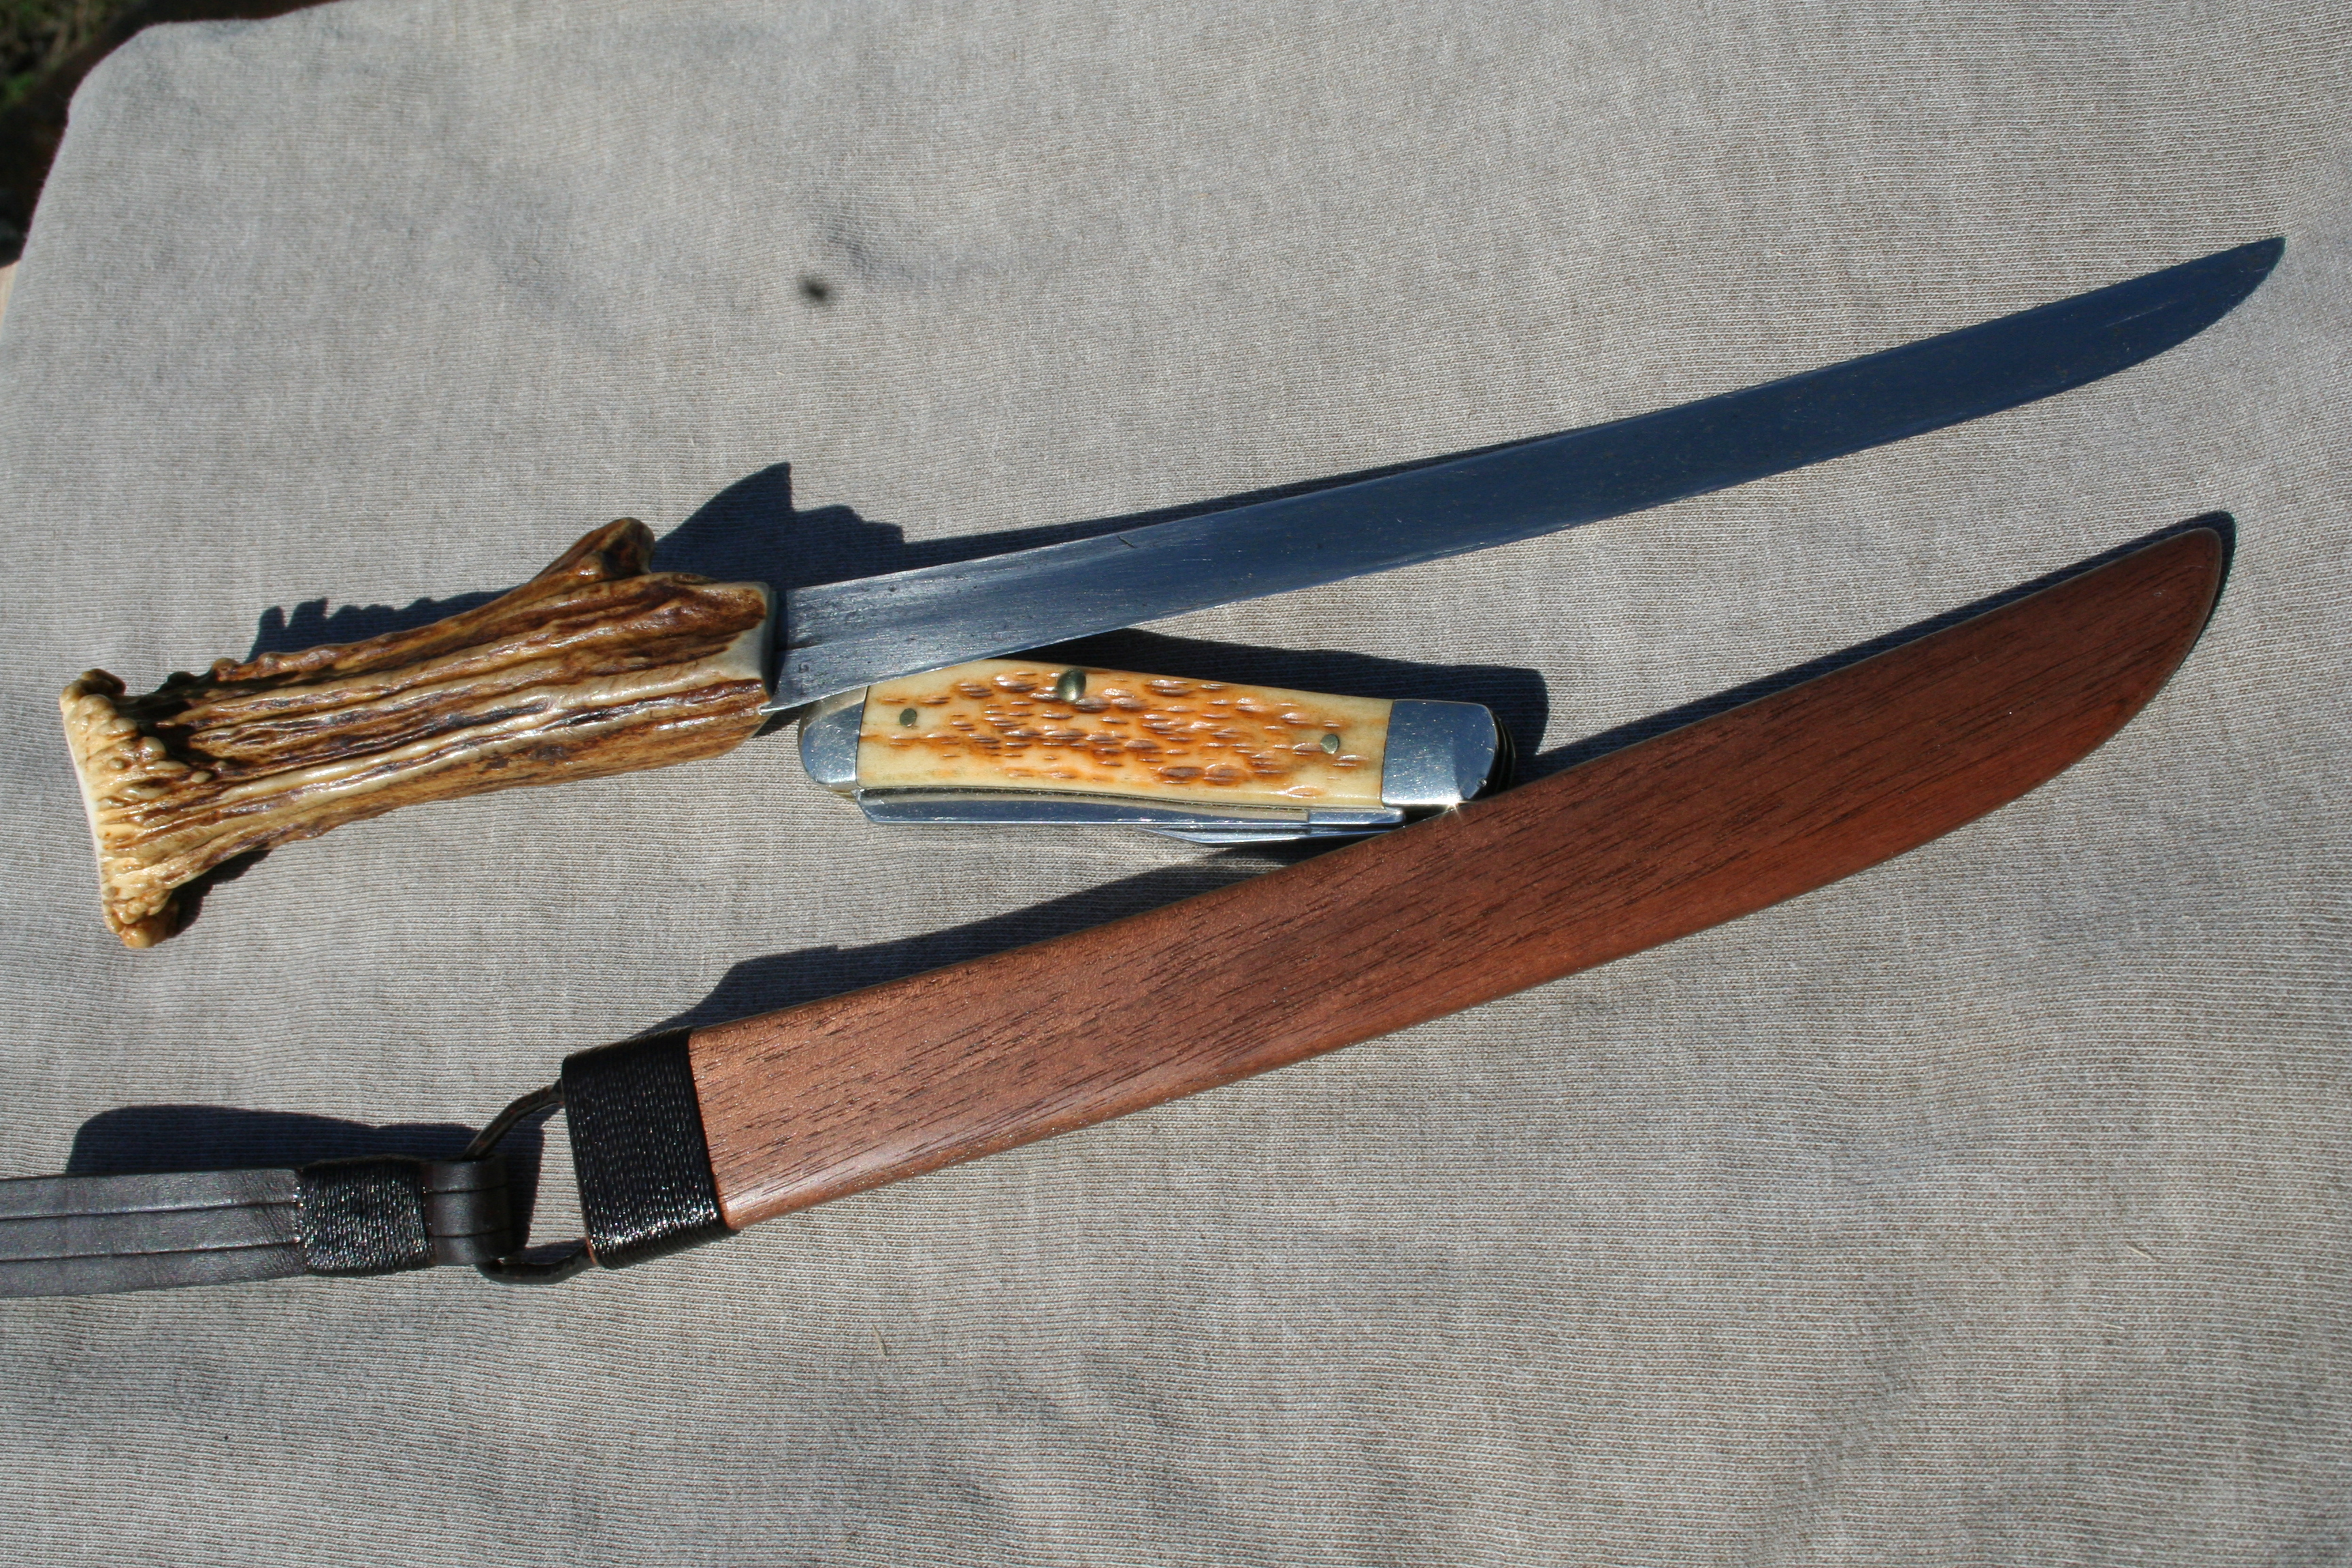 Protect your blade in a wooden sheath